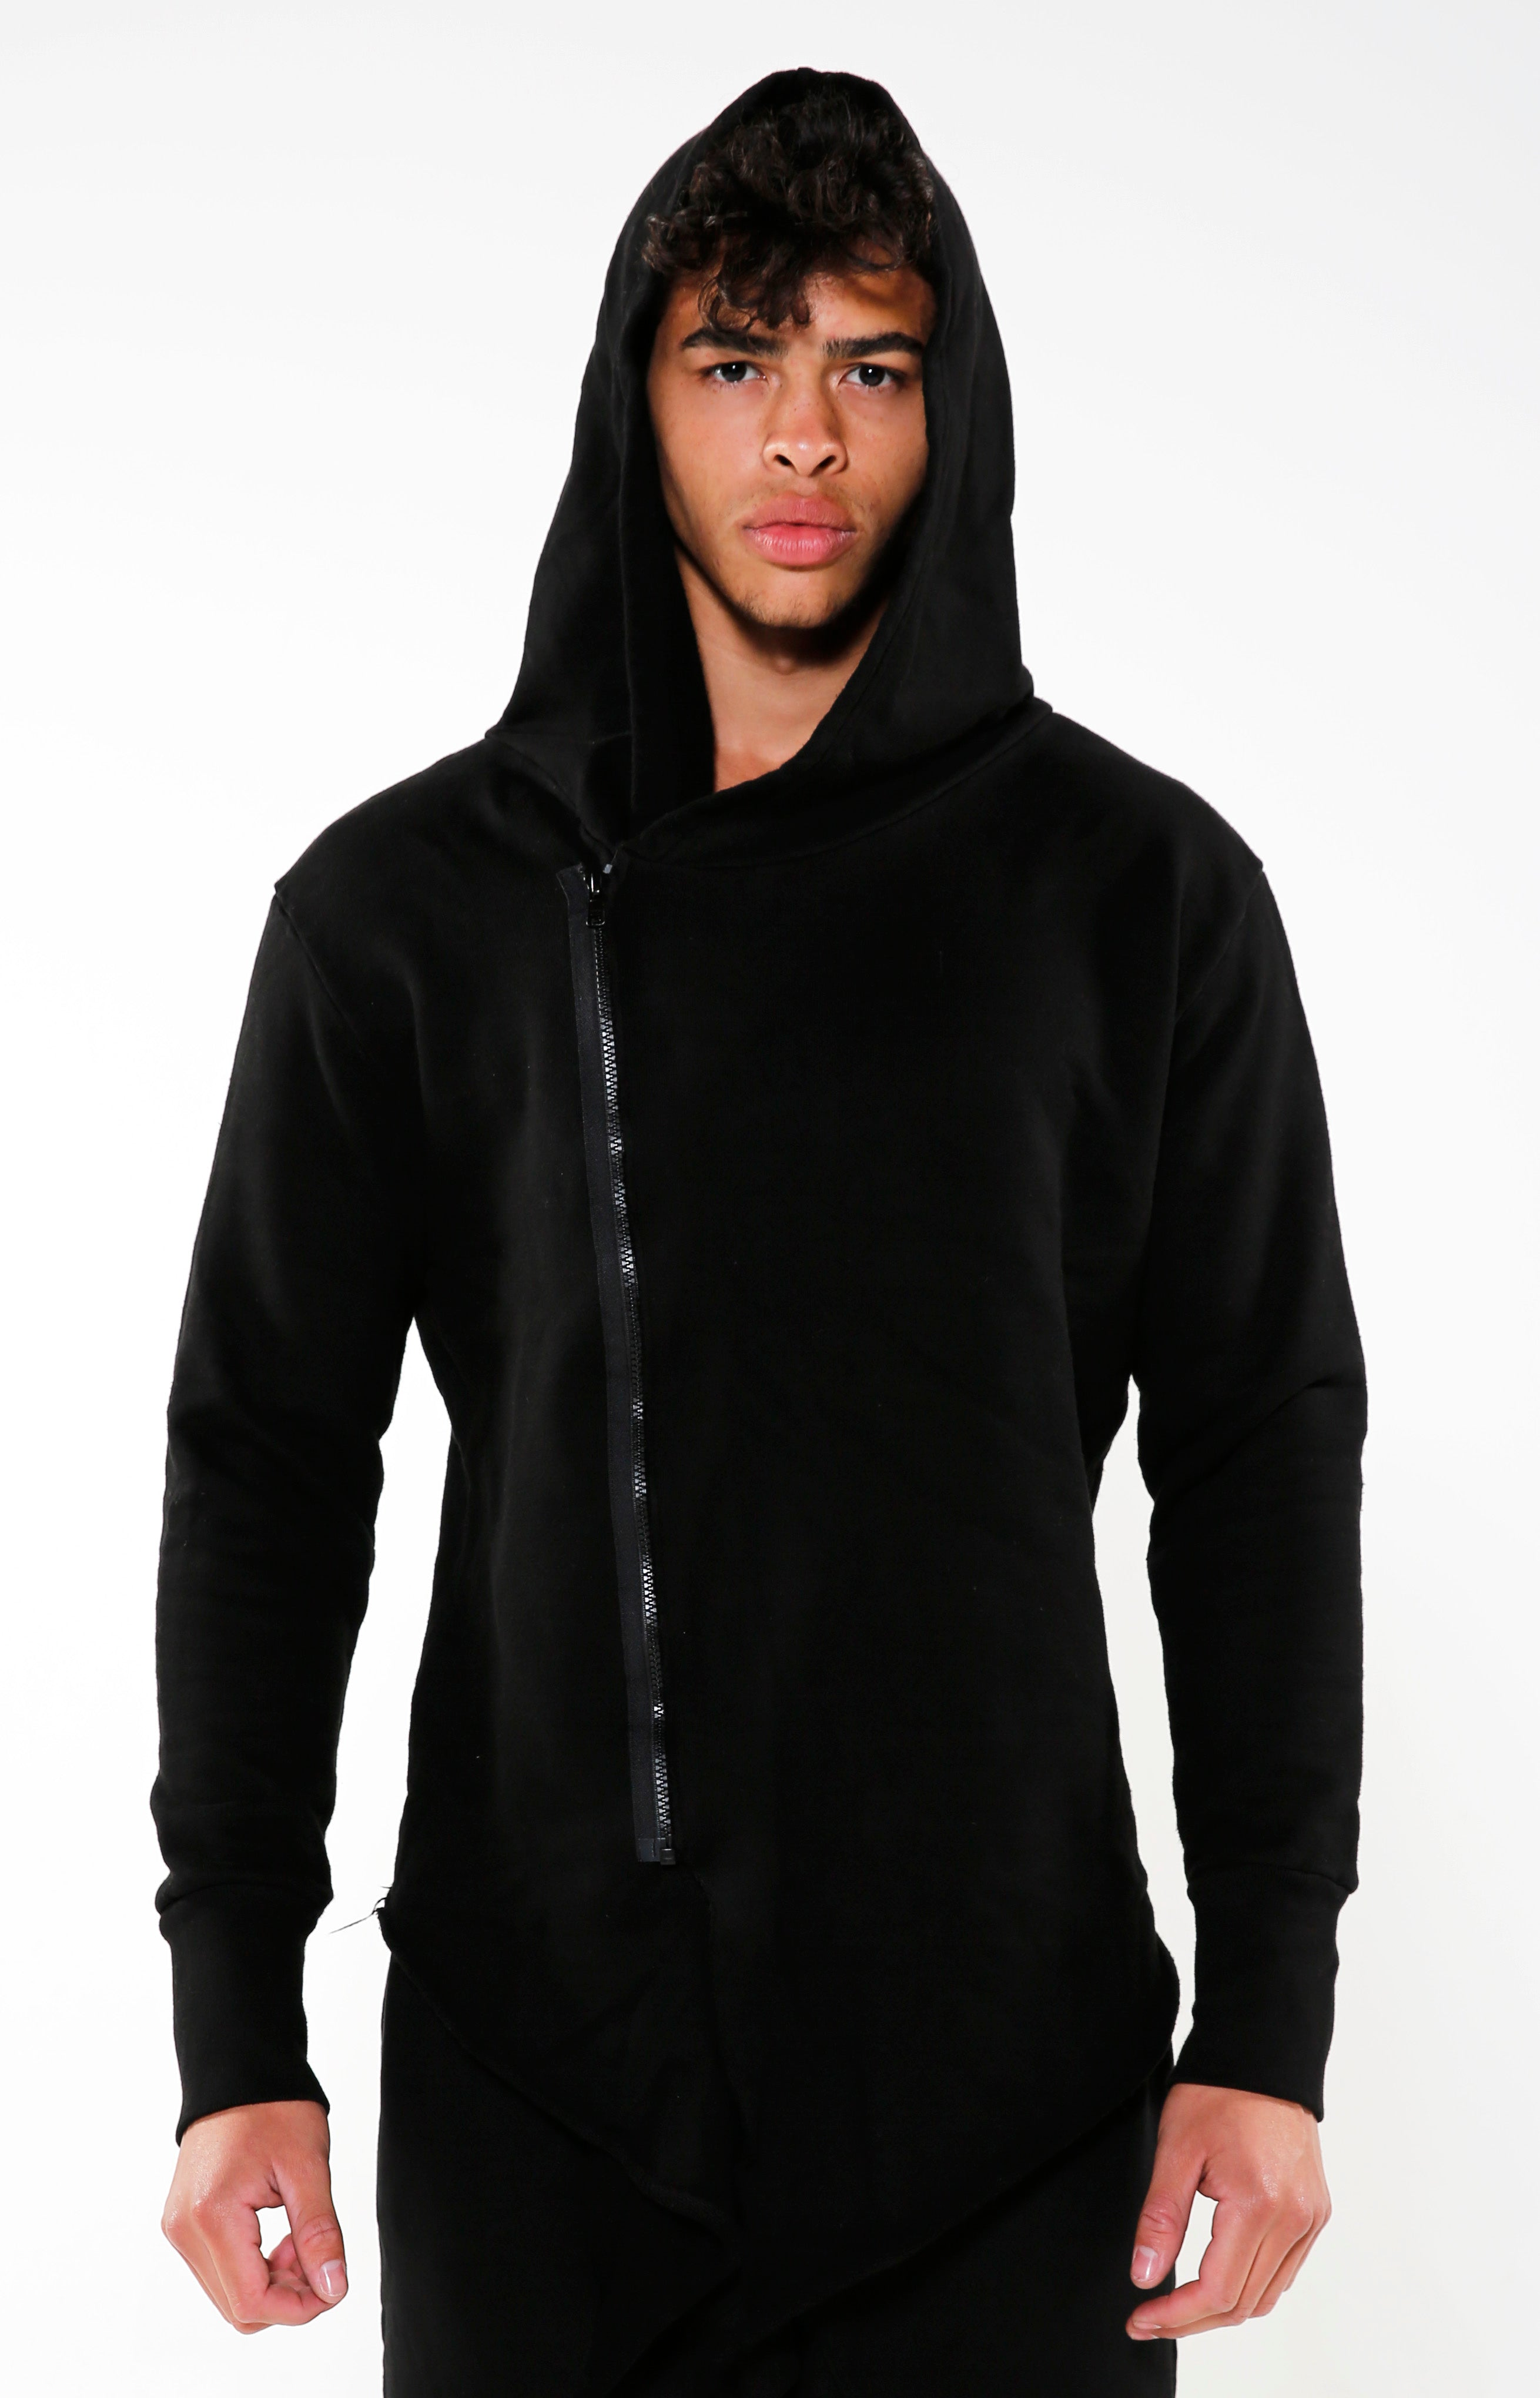 Men's Black Heavy Assassin Hoodie | Golden Aesthetics - Golden Aesthetics